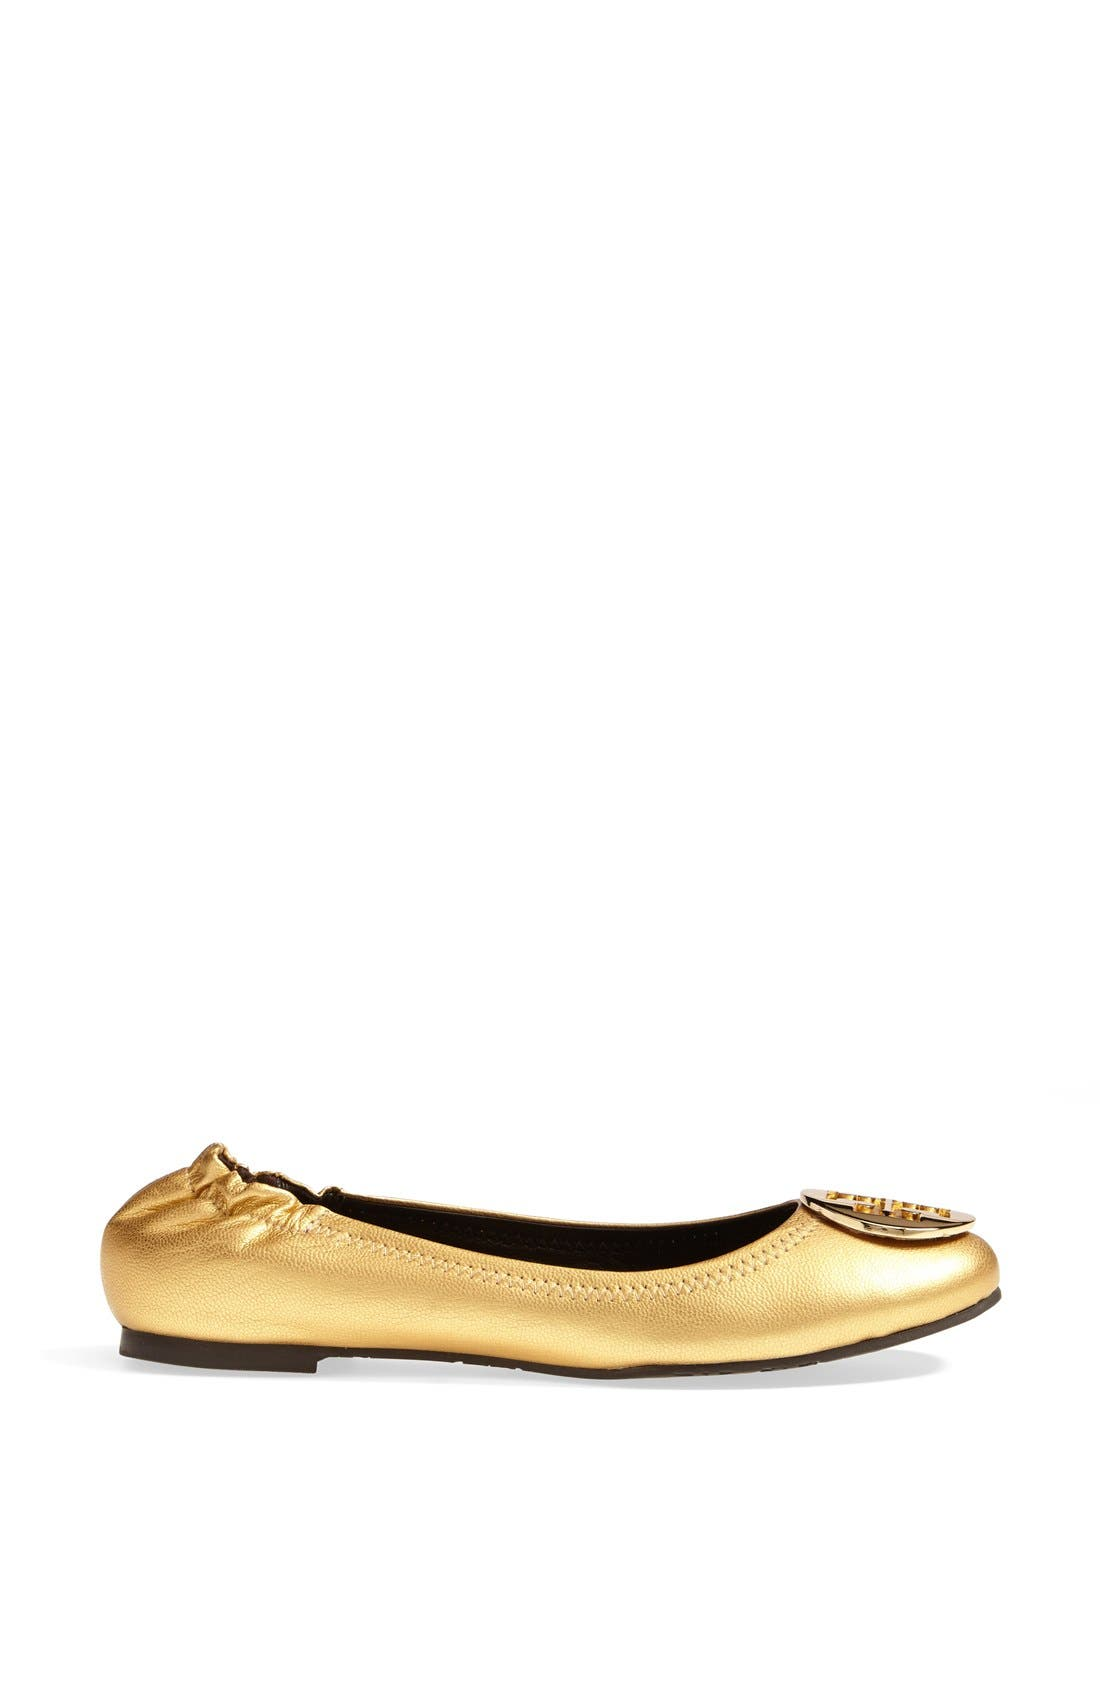 Alternate Image 4  - Tory Burch 'Reva' Ballerina Flat (Women)